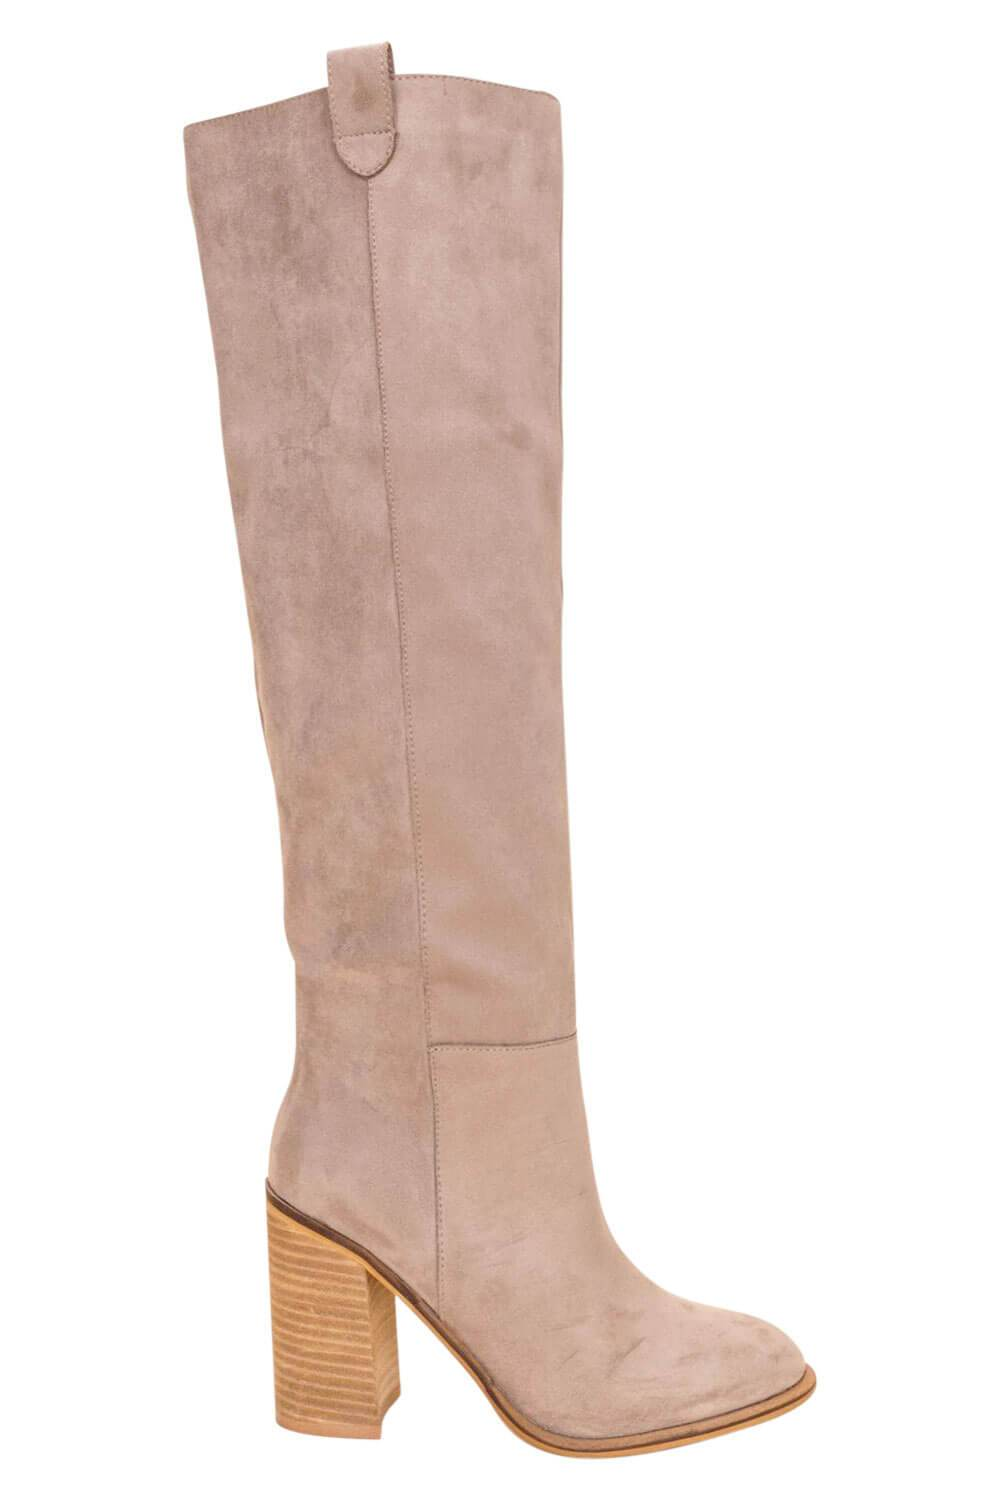 Saint Box Cut Block Heel Tall Boot taupe side MILK MONEY